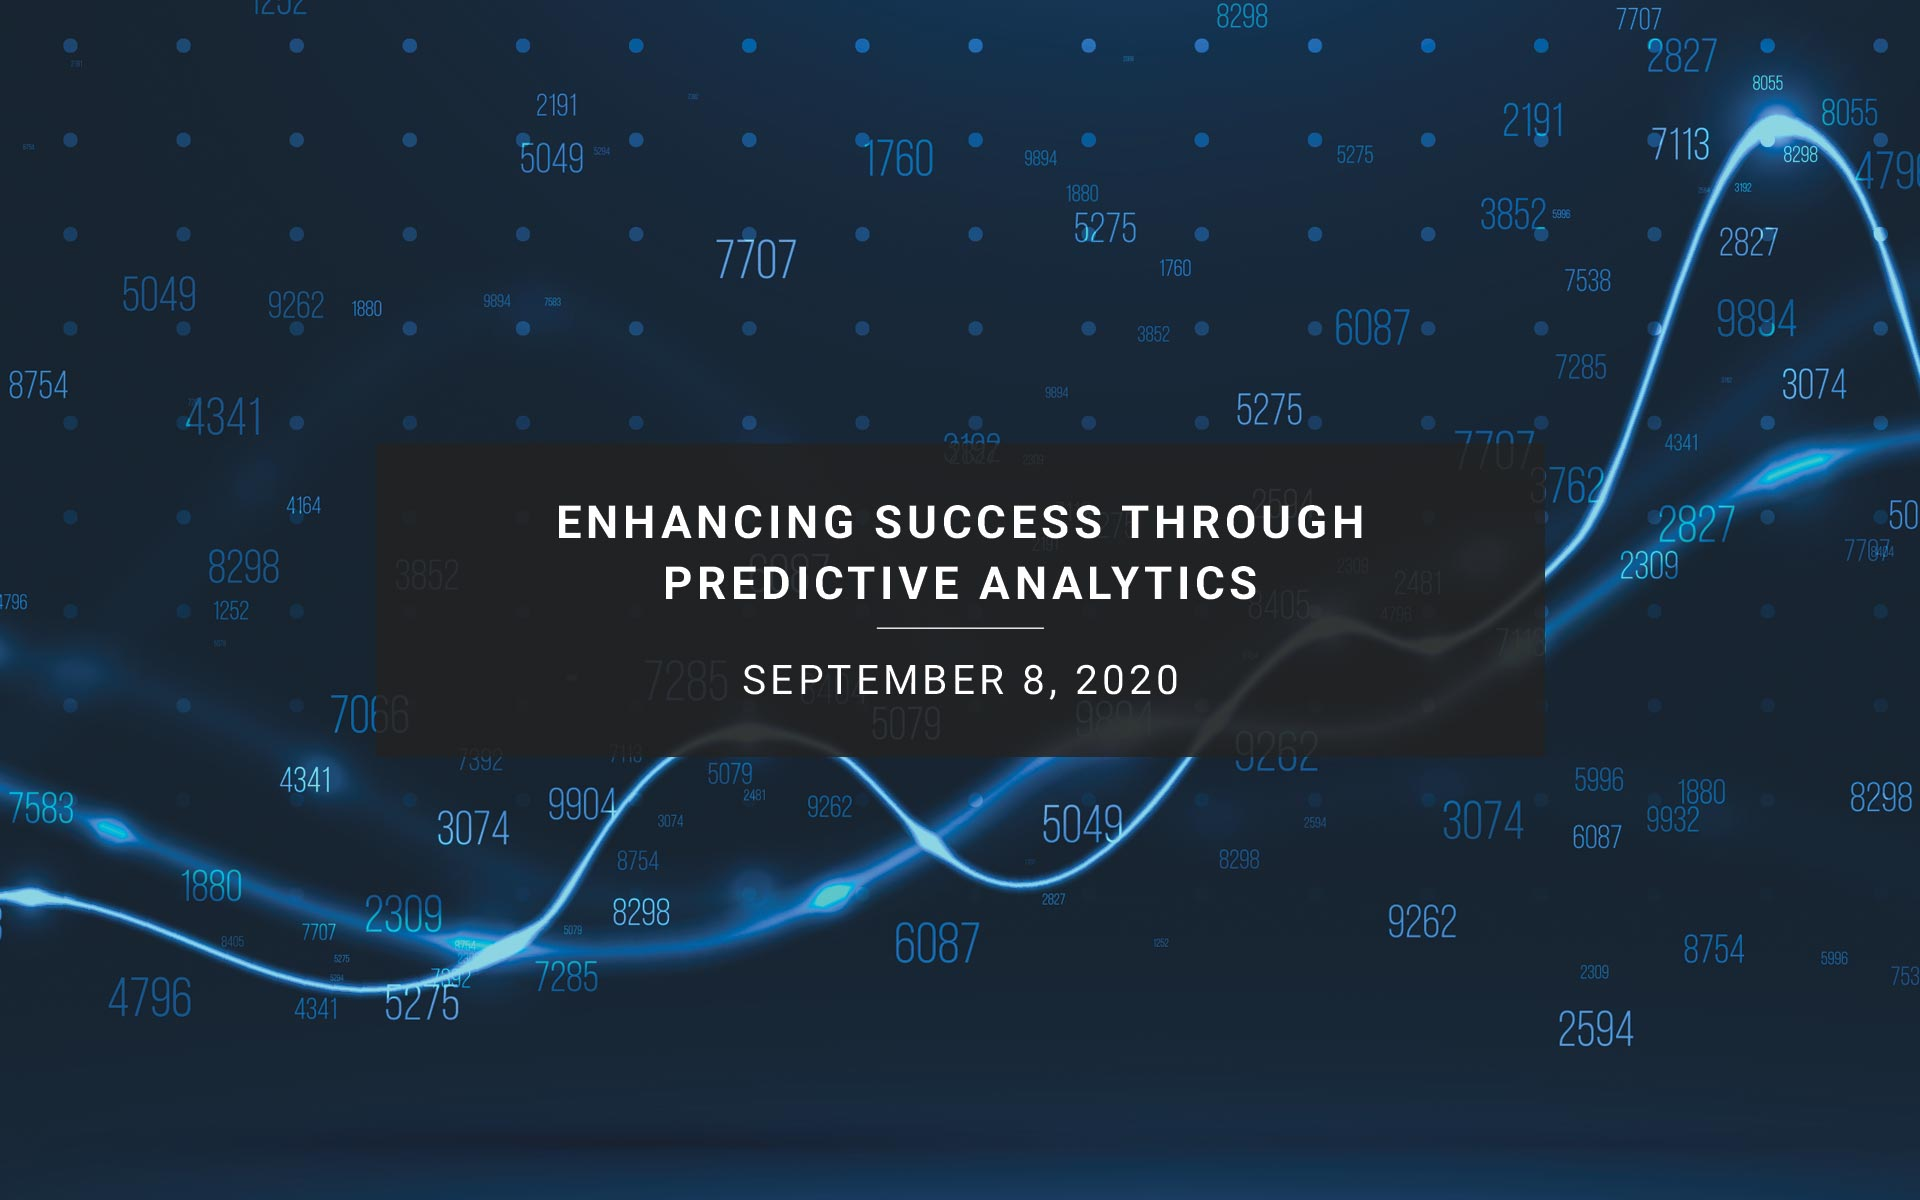 Enhancing Success through Predictive Analytics | New Resources Consulting